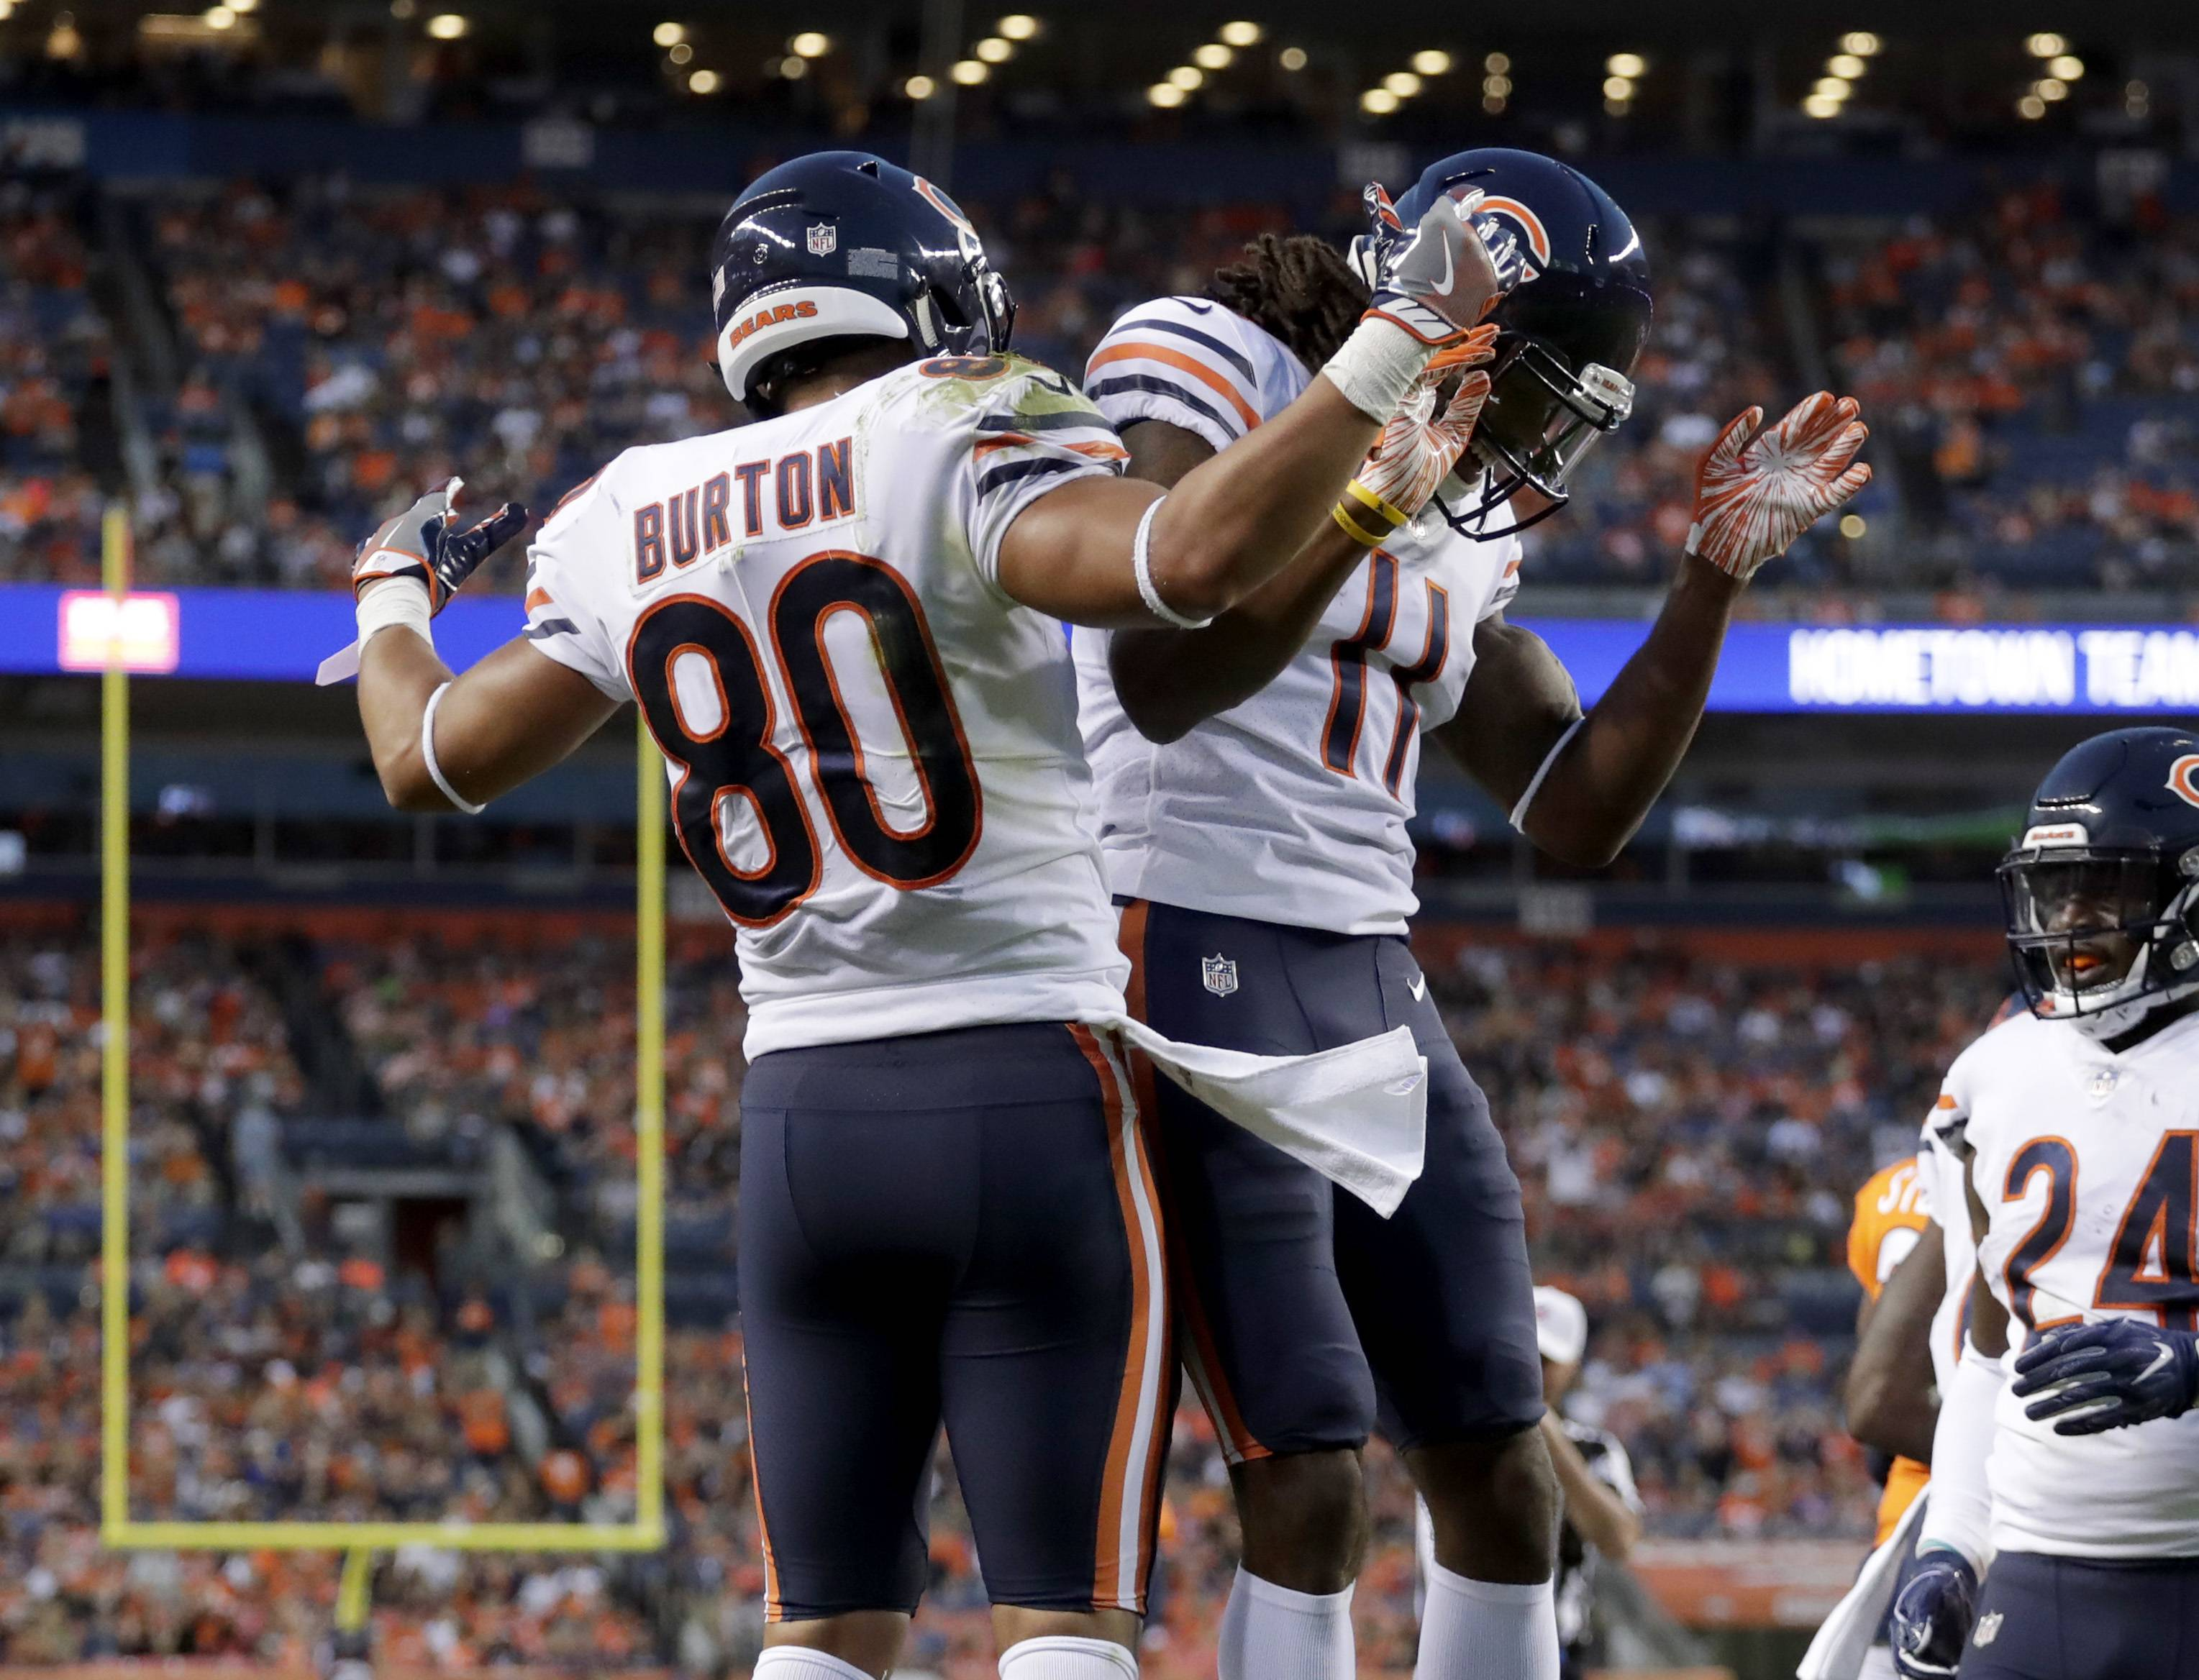 Chicago Bears tight end Trey Burton (80) celebrates his touchdown with wide receiver Kevin White (11) during the first half of a preseason NFL football game against the Denver Broncos, Saturday, Aug. 18, 2018, in Denver. (AP Photo/Jack Dempsey)